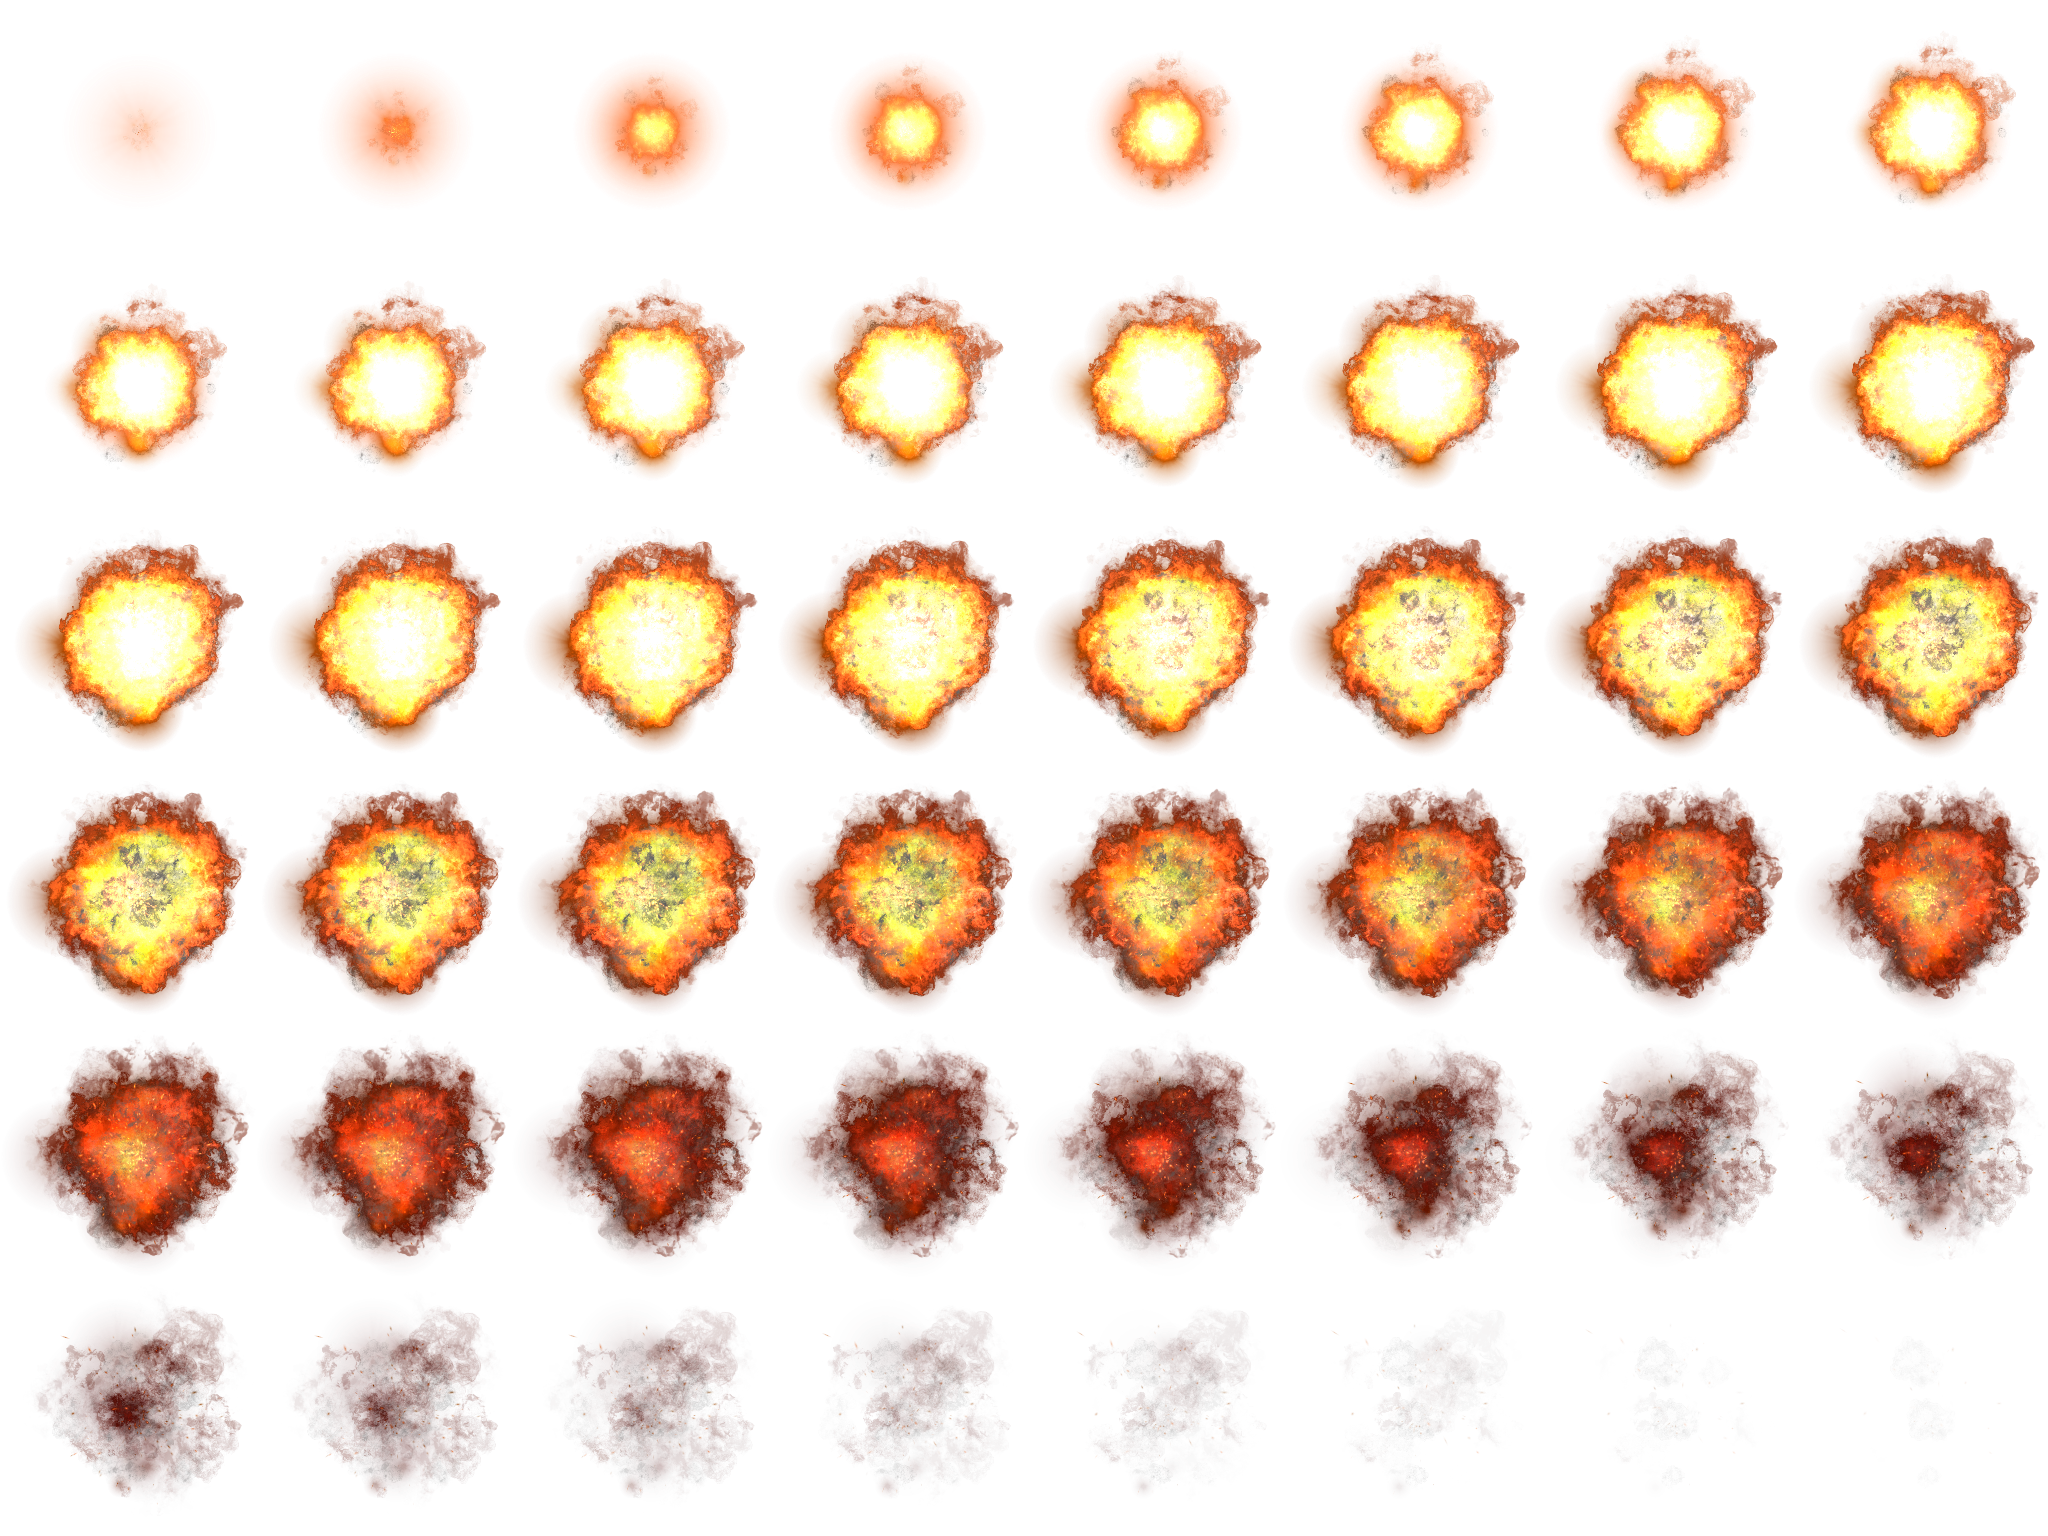 Explosion sprite sheet png. Dgame therefore